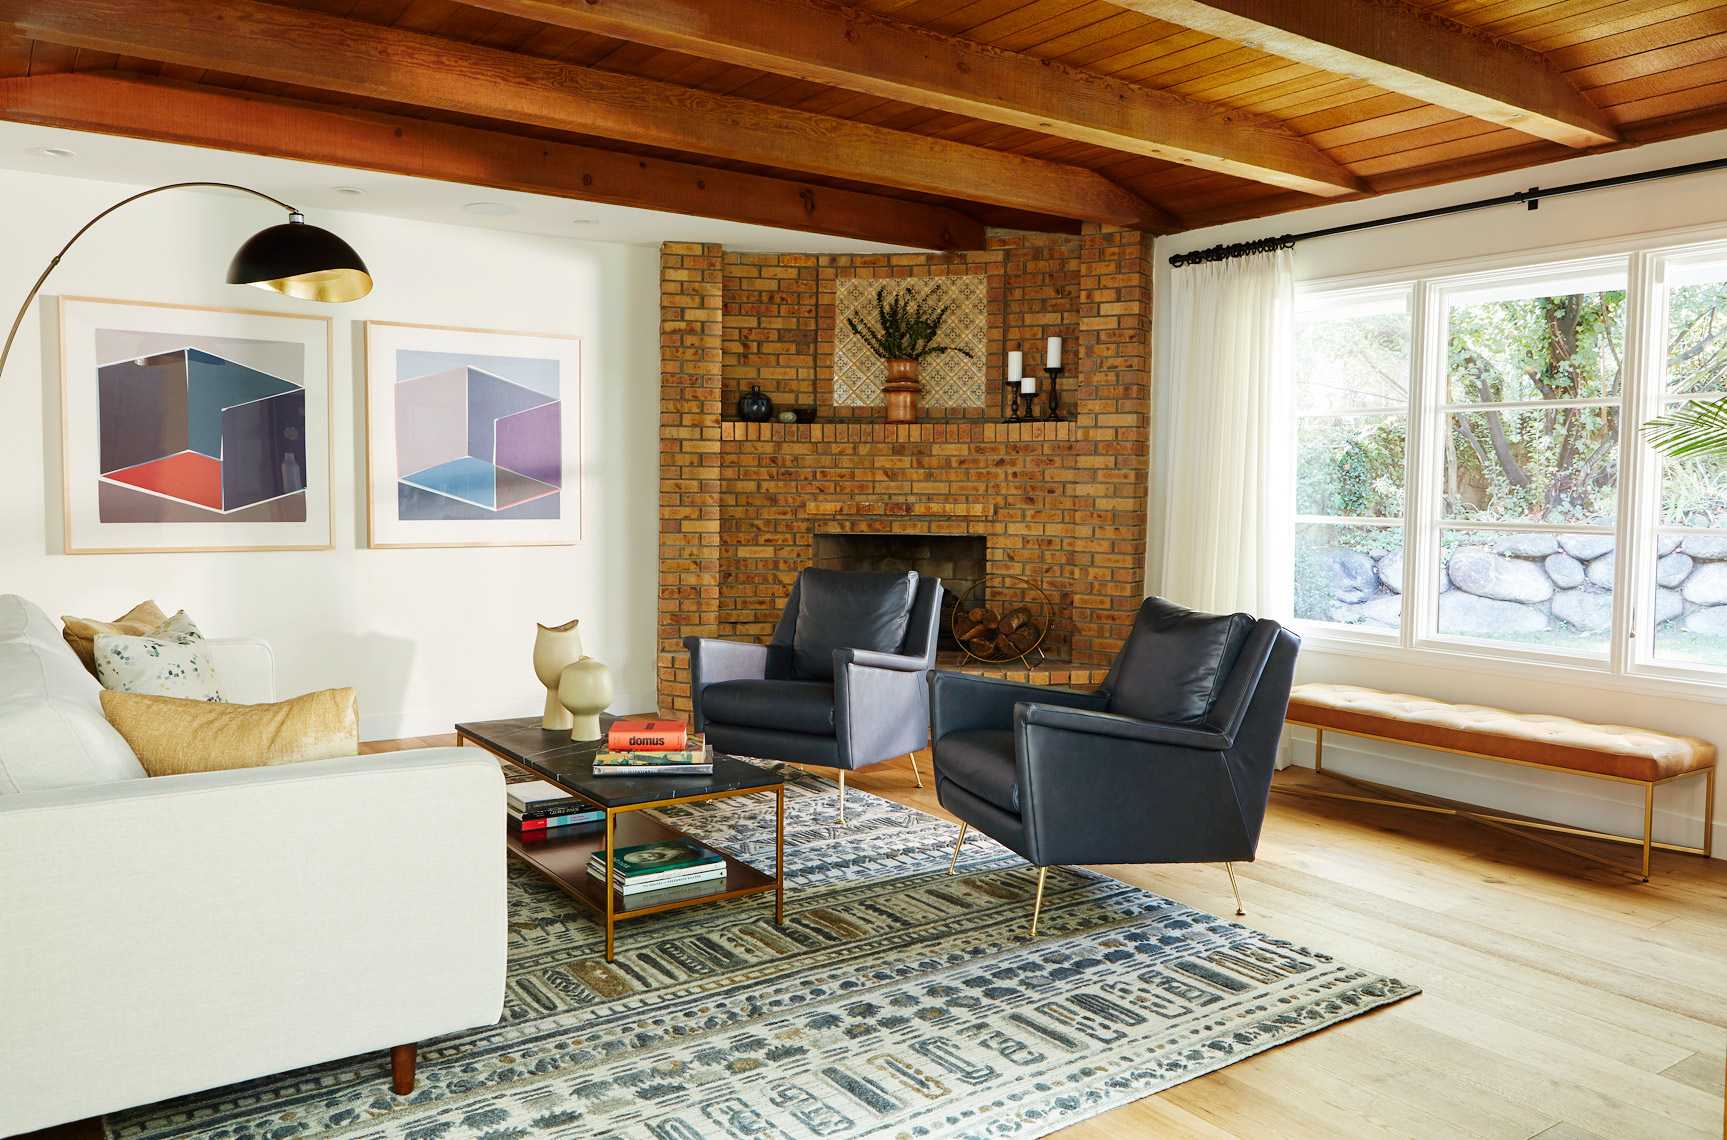 Lily_Spindle_Pasadena_Living_Room_1_017